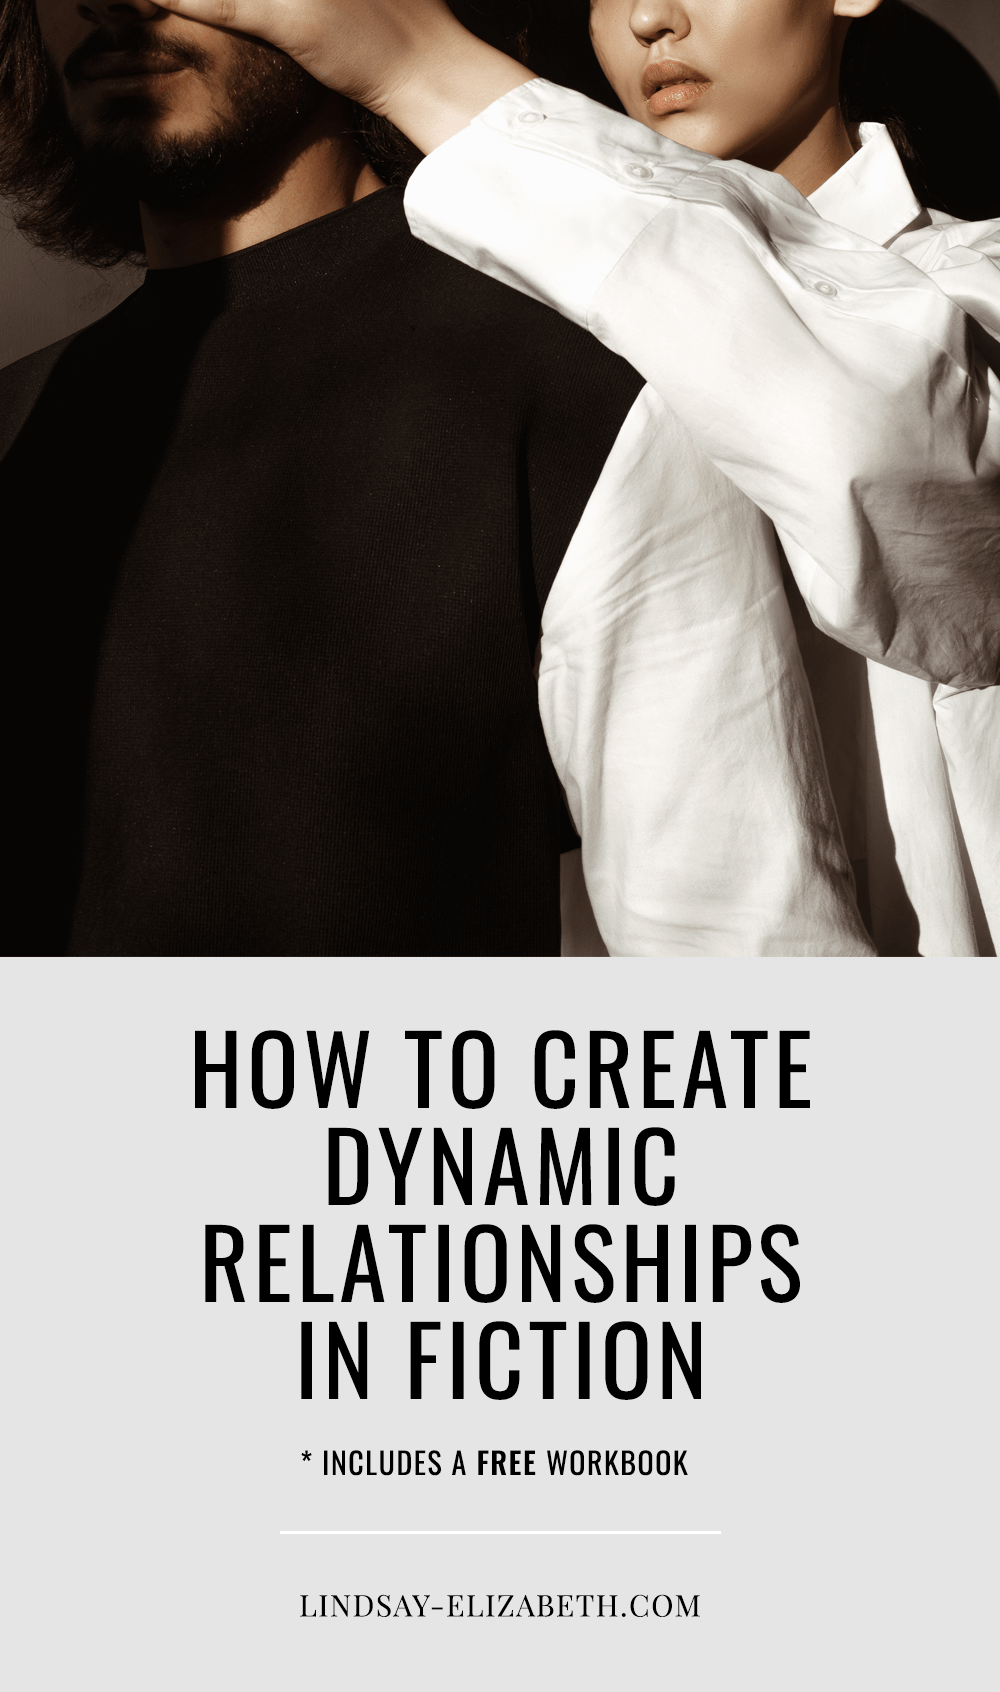 Relationships play a pivotal role in our characters' journeys. So, how do we as writers ensure that we create relationships that are complex, engaging, and believable? There are certain key pillars to building dynamic fictional relationships that can help. Here are my tips on creating dynamic relationships in fiction (both romantic and platonic) that add depth to the story and help move it forward in a natural, compelling way. #writingadvice #writingtips #writers #authors #storytelling